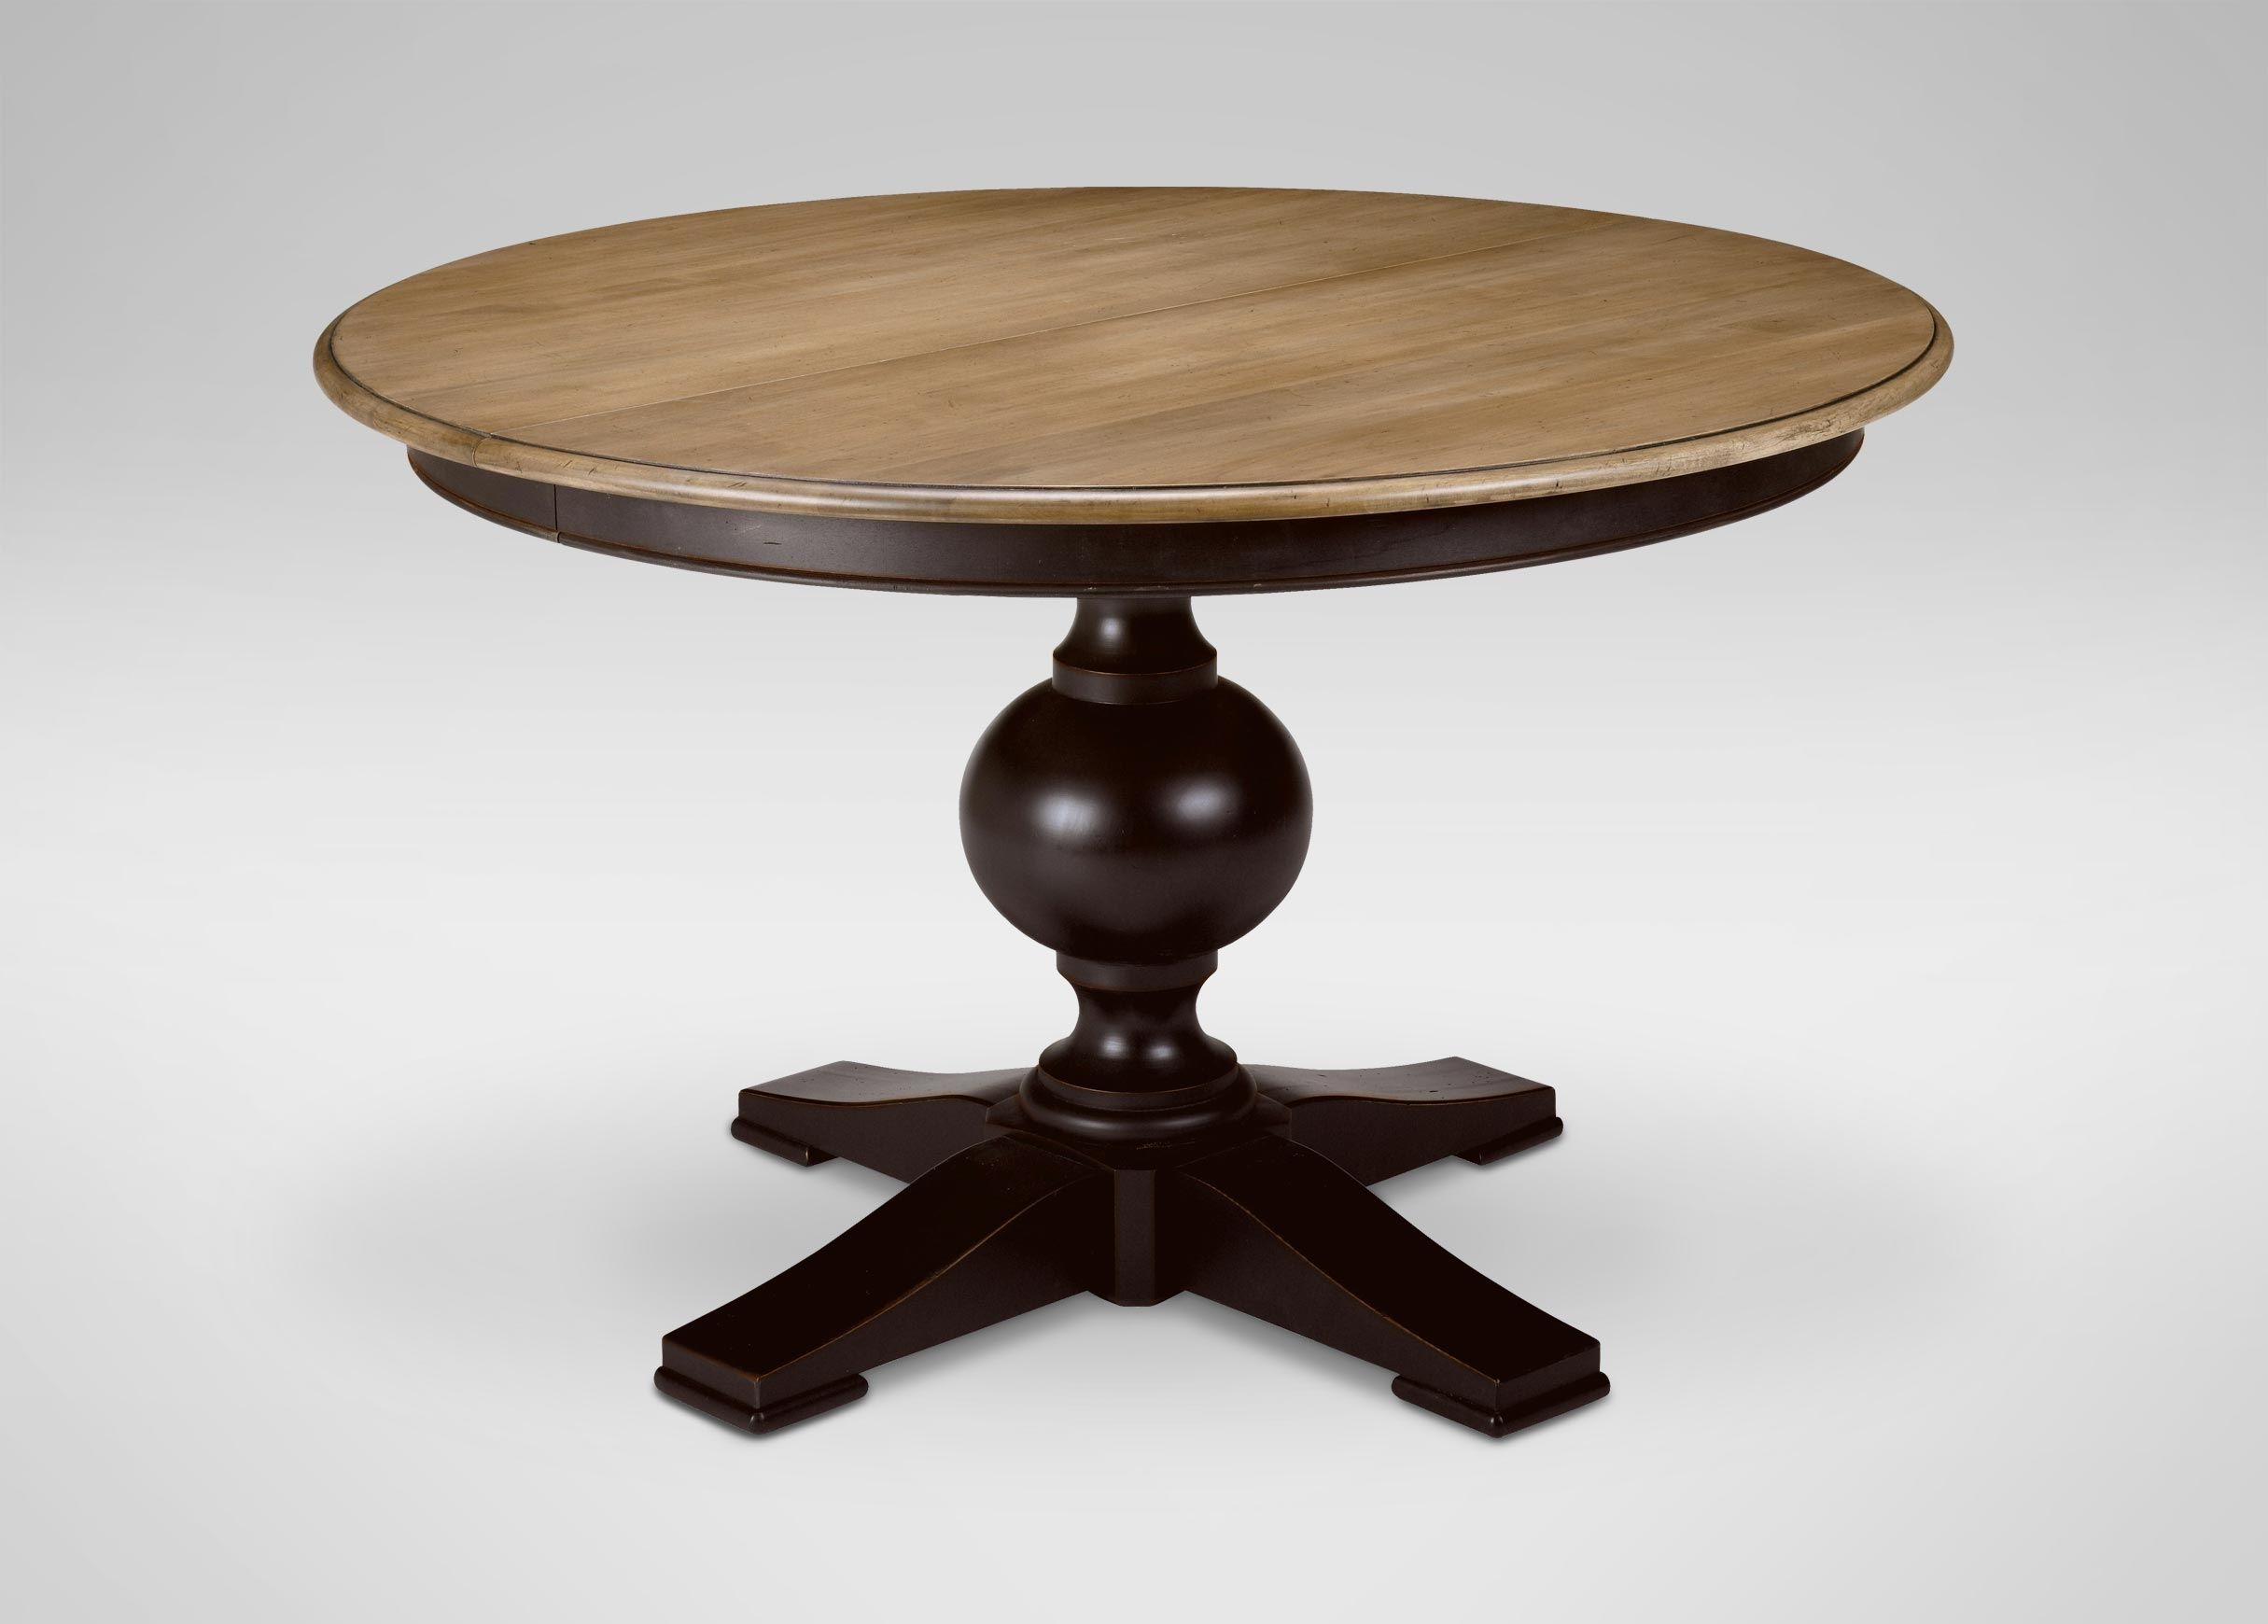 Cooper round dining table ethan allen argharts